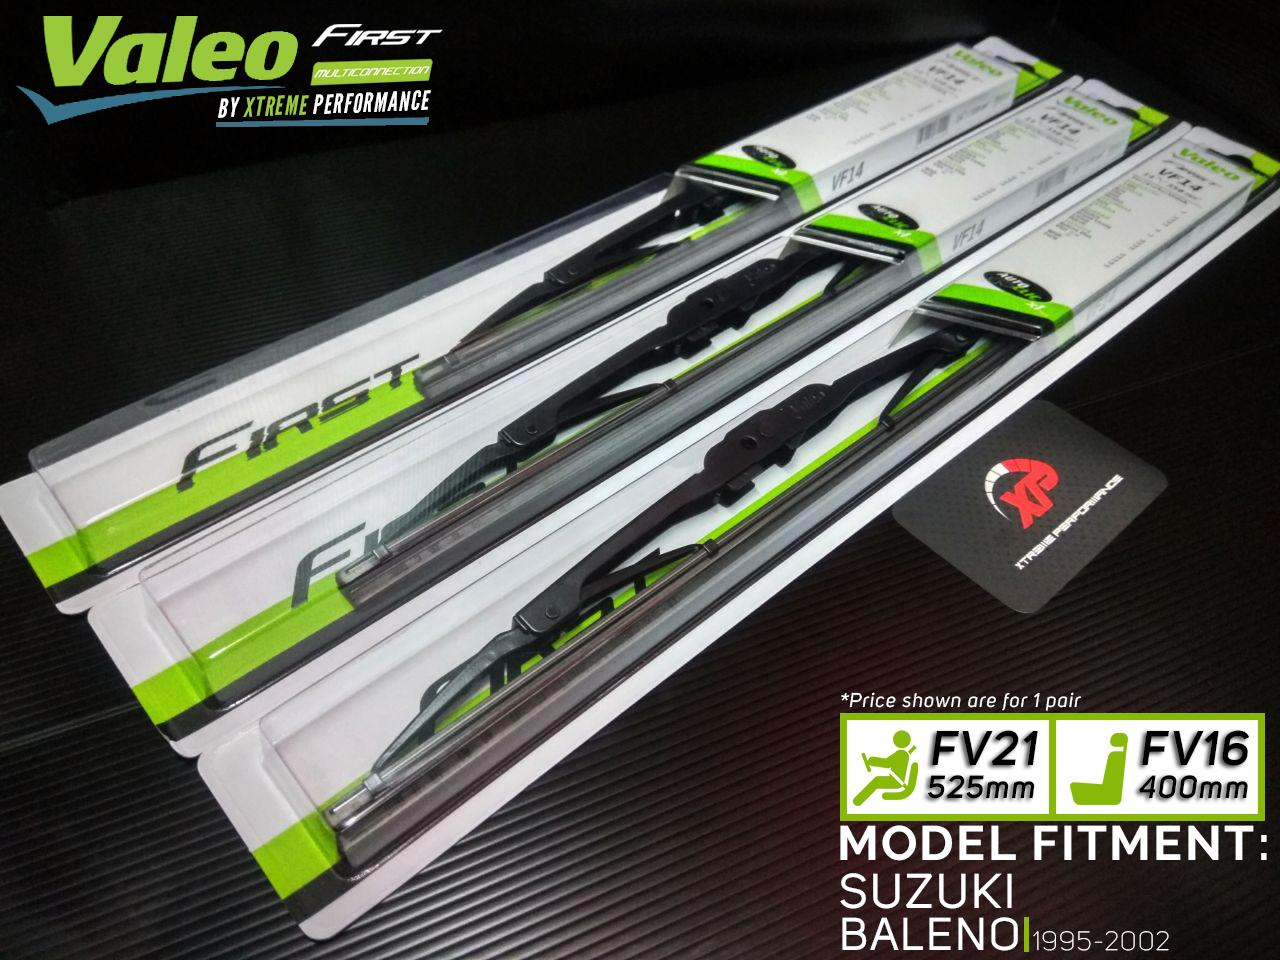 Valeo First Windshield Wiper Blades For SUZUKI BALENO (1995-2002)